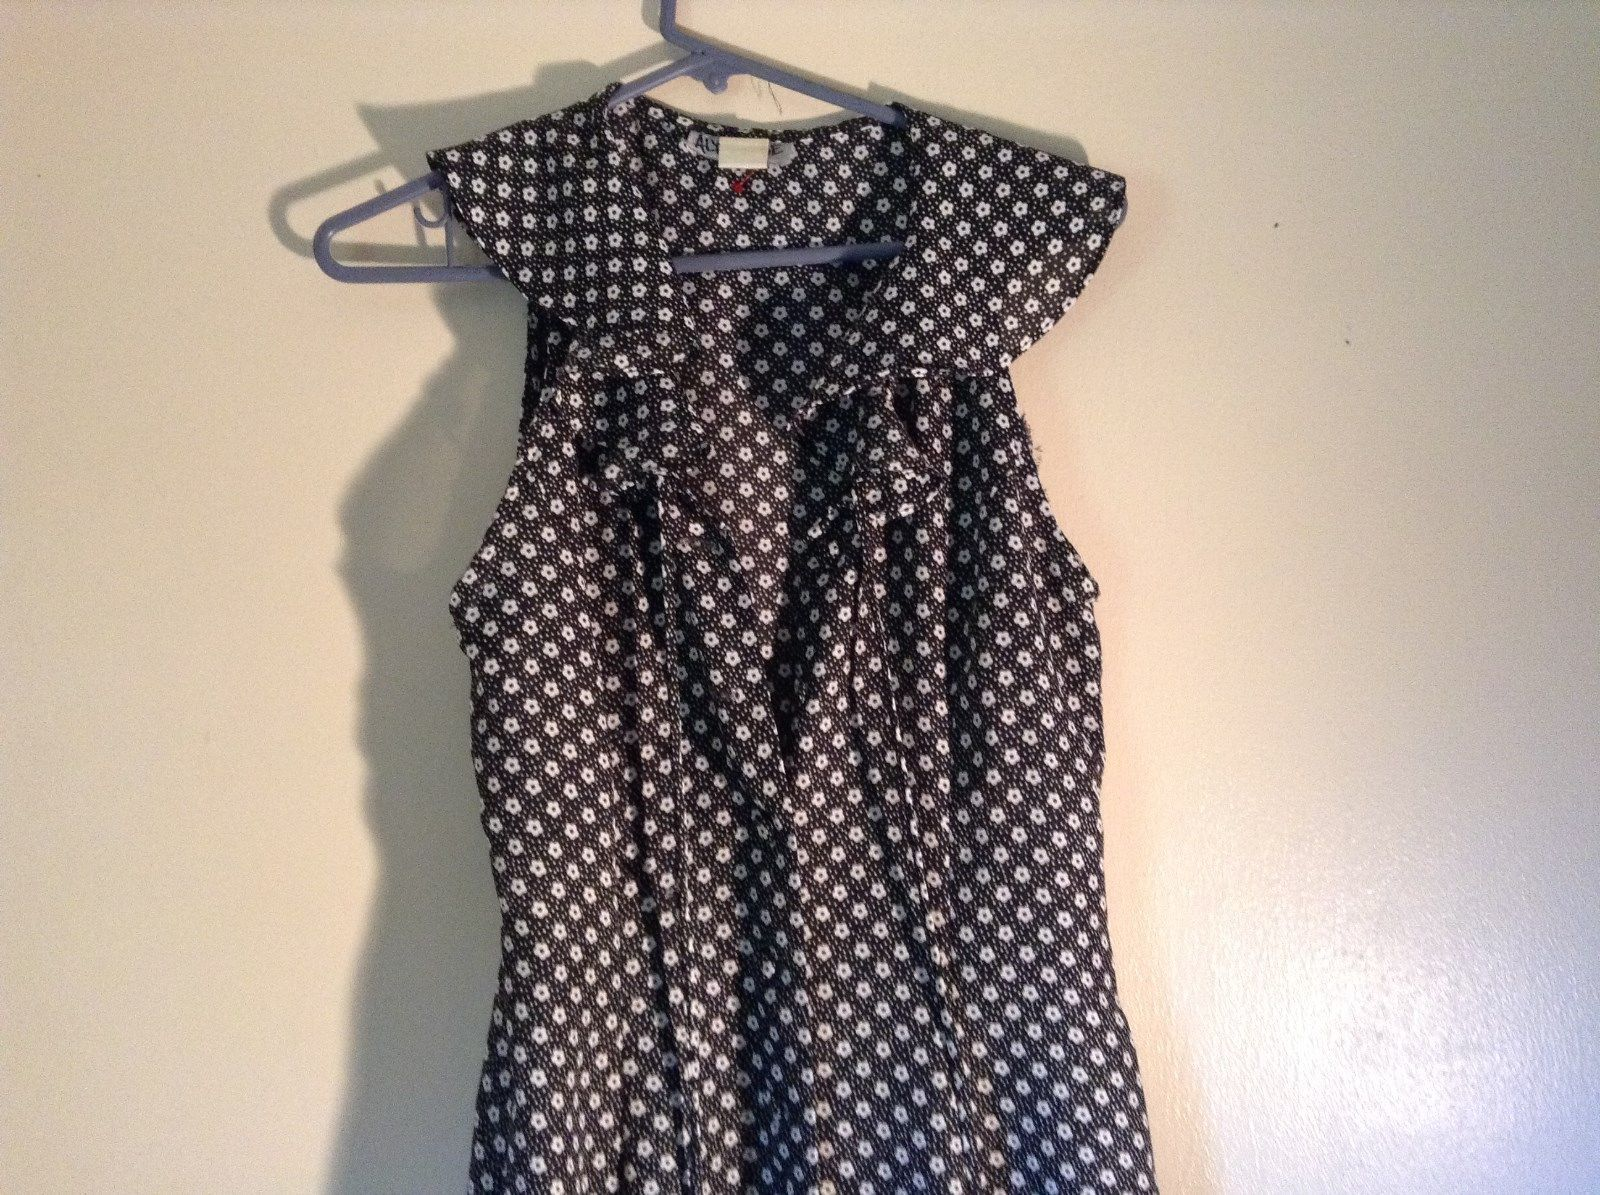 Alyn Paige Black and White Floral Sleeveless Dress Size 7 to 8 Light Material